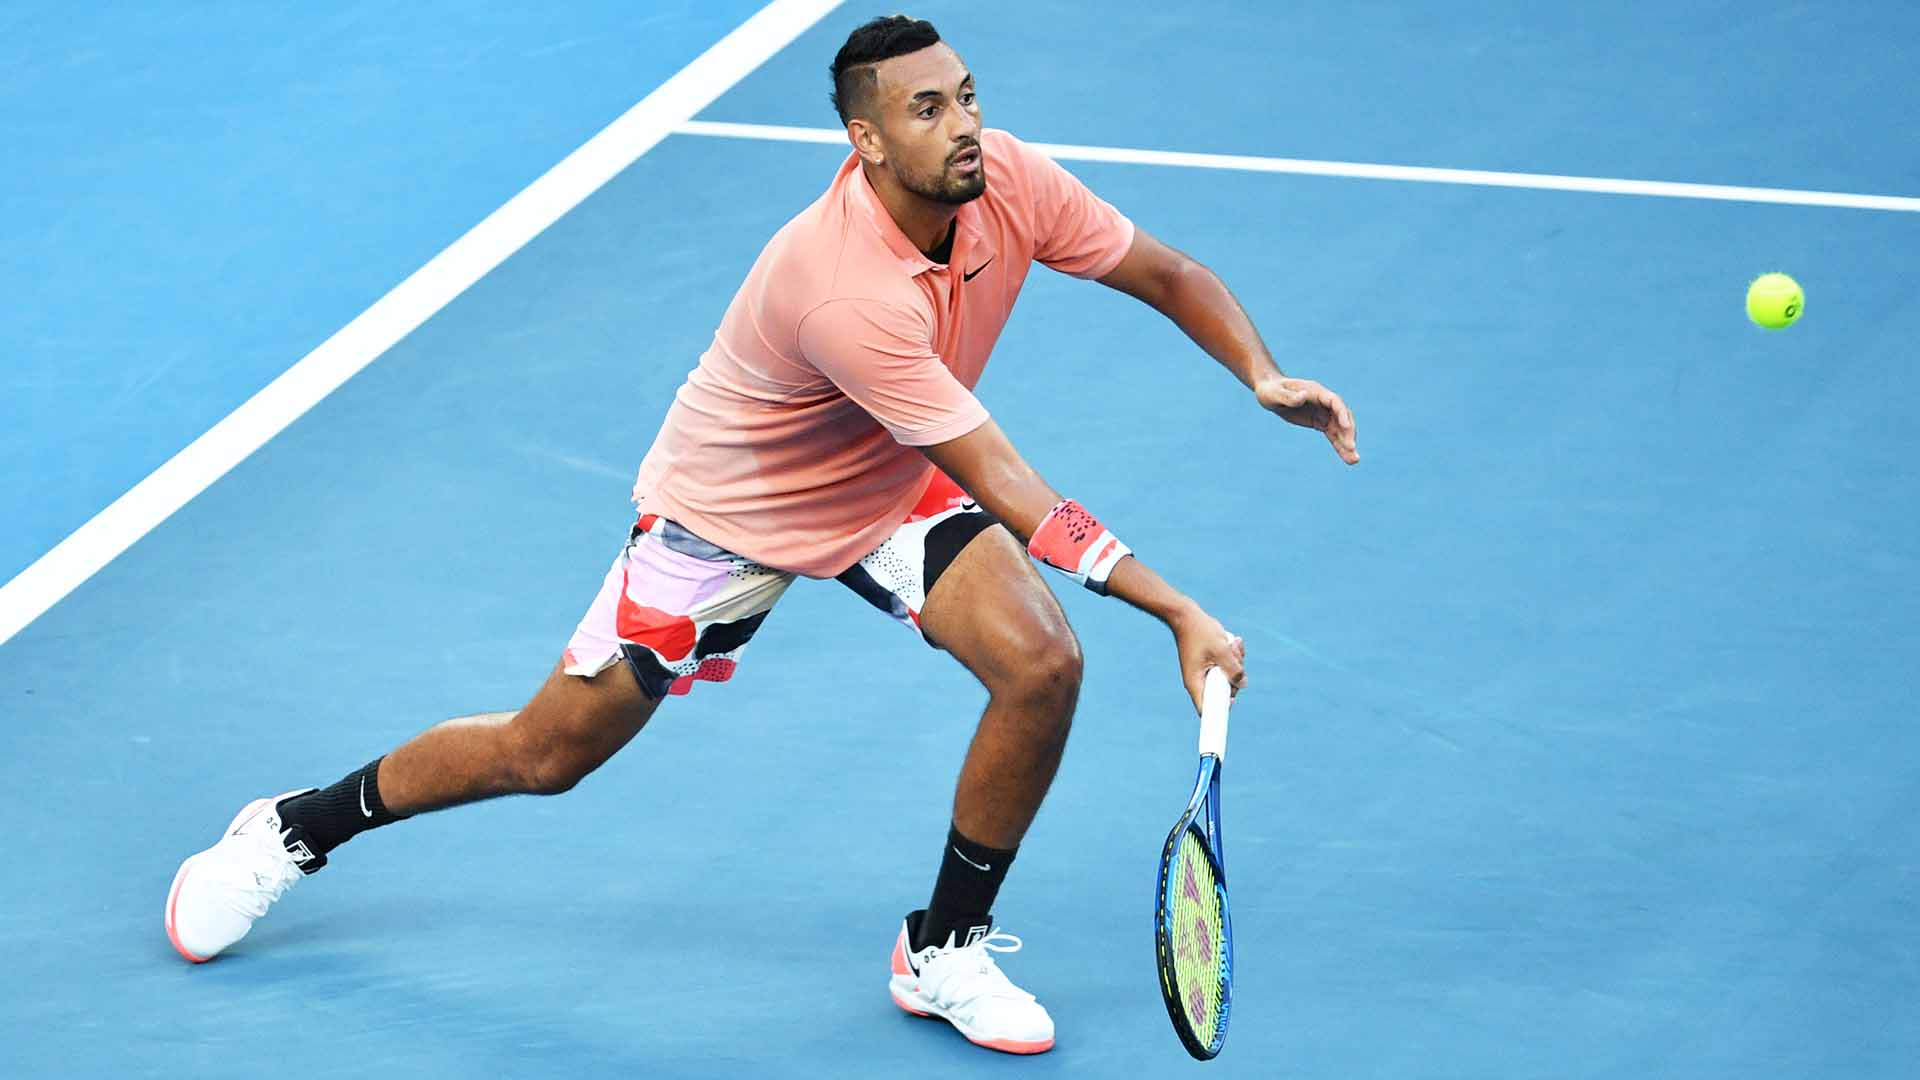 Nick Kyrgios is the 23rd seed at the Australian Open.